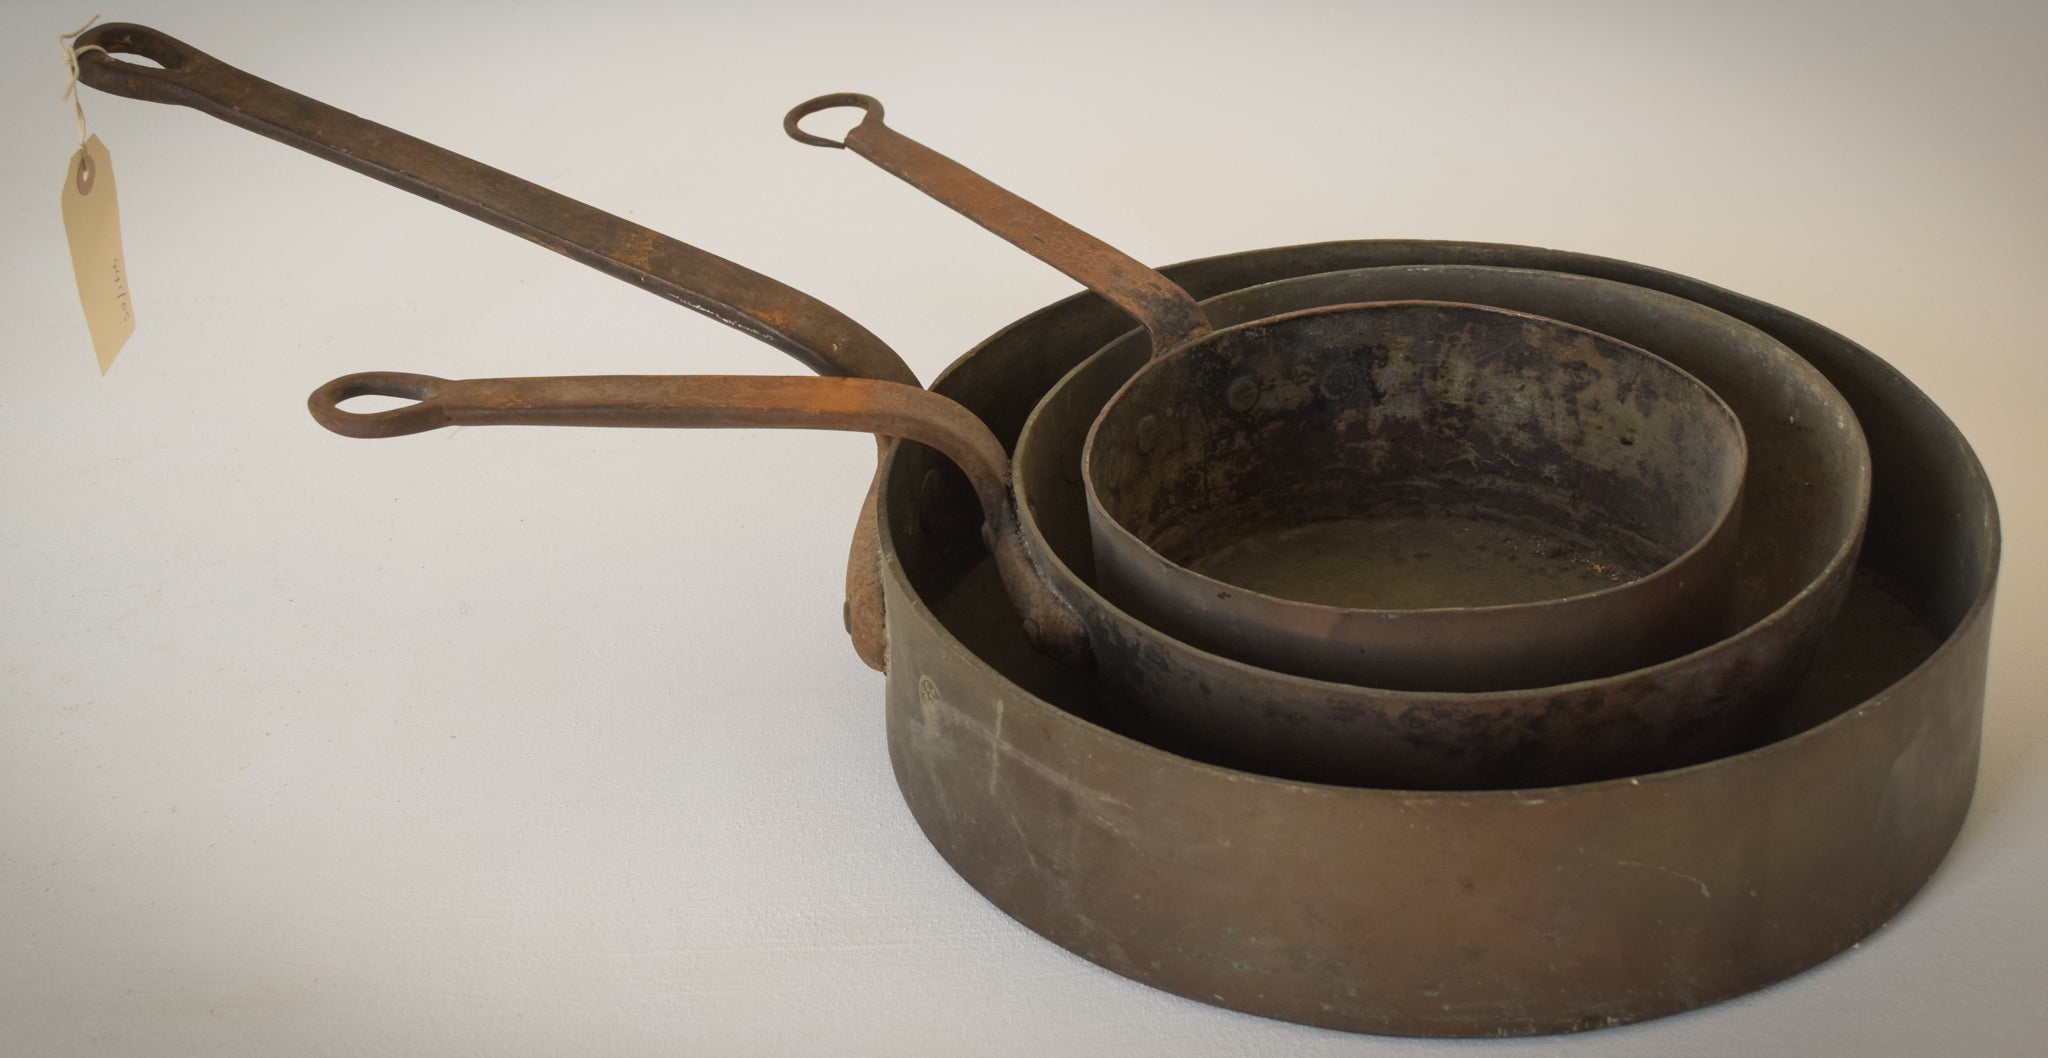 Three Unusual Antique Copper and Iron handled saucepans